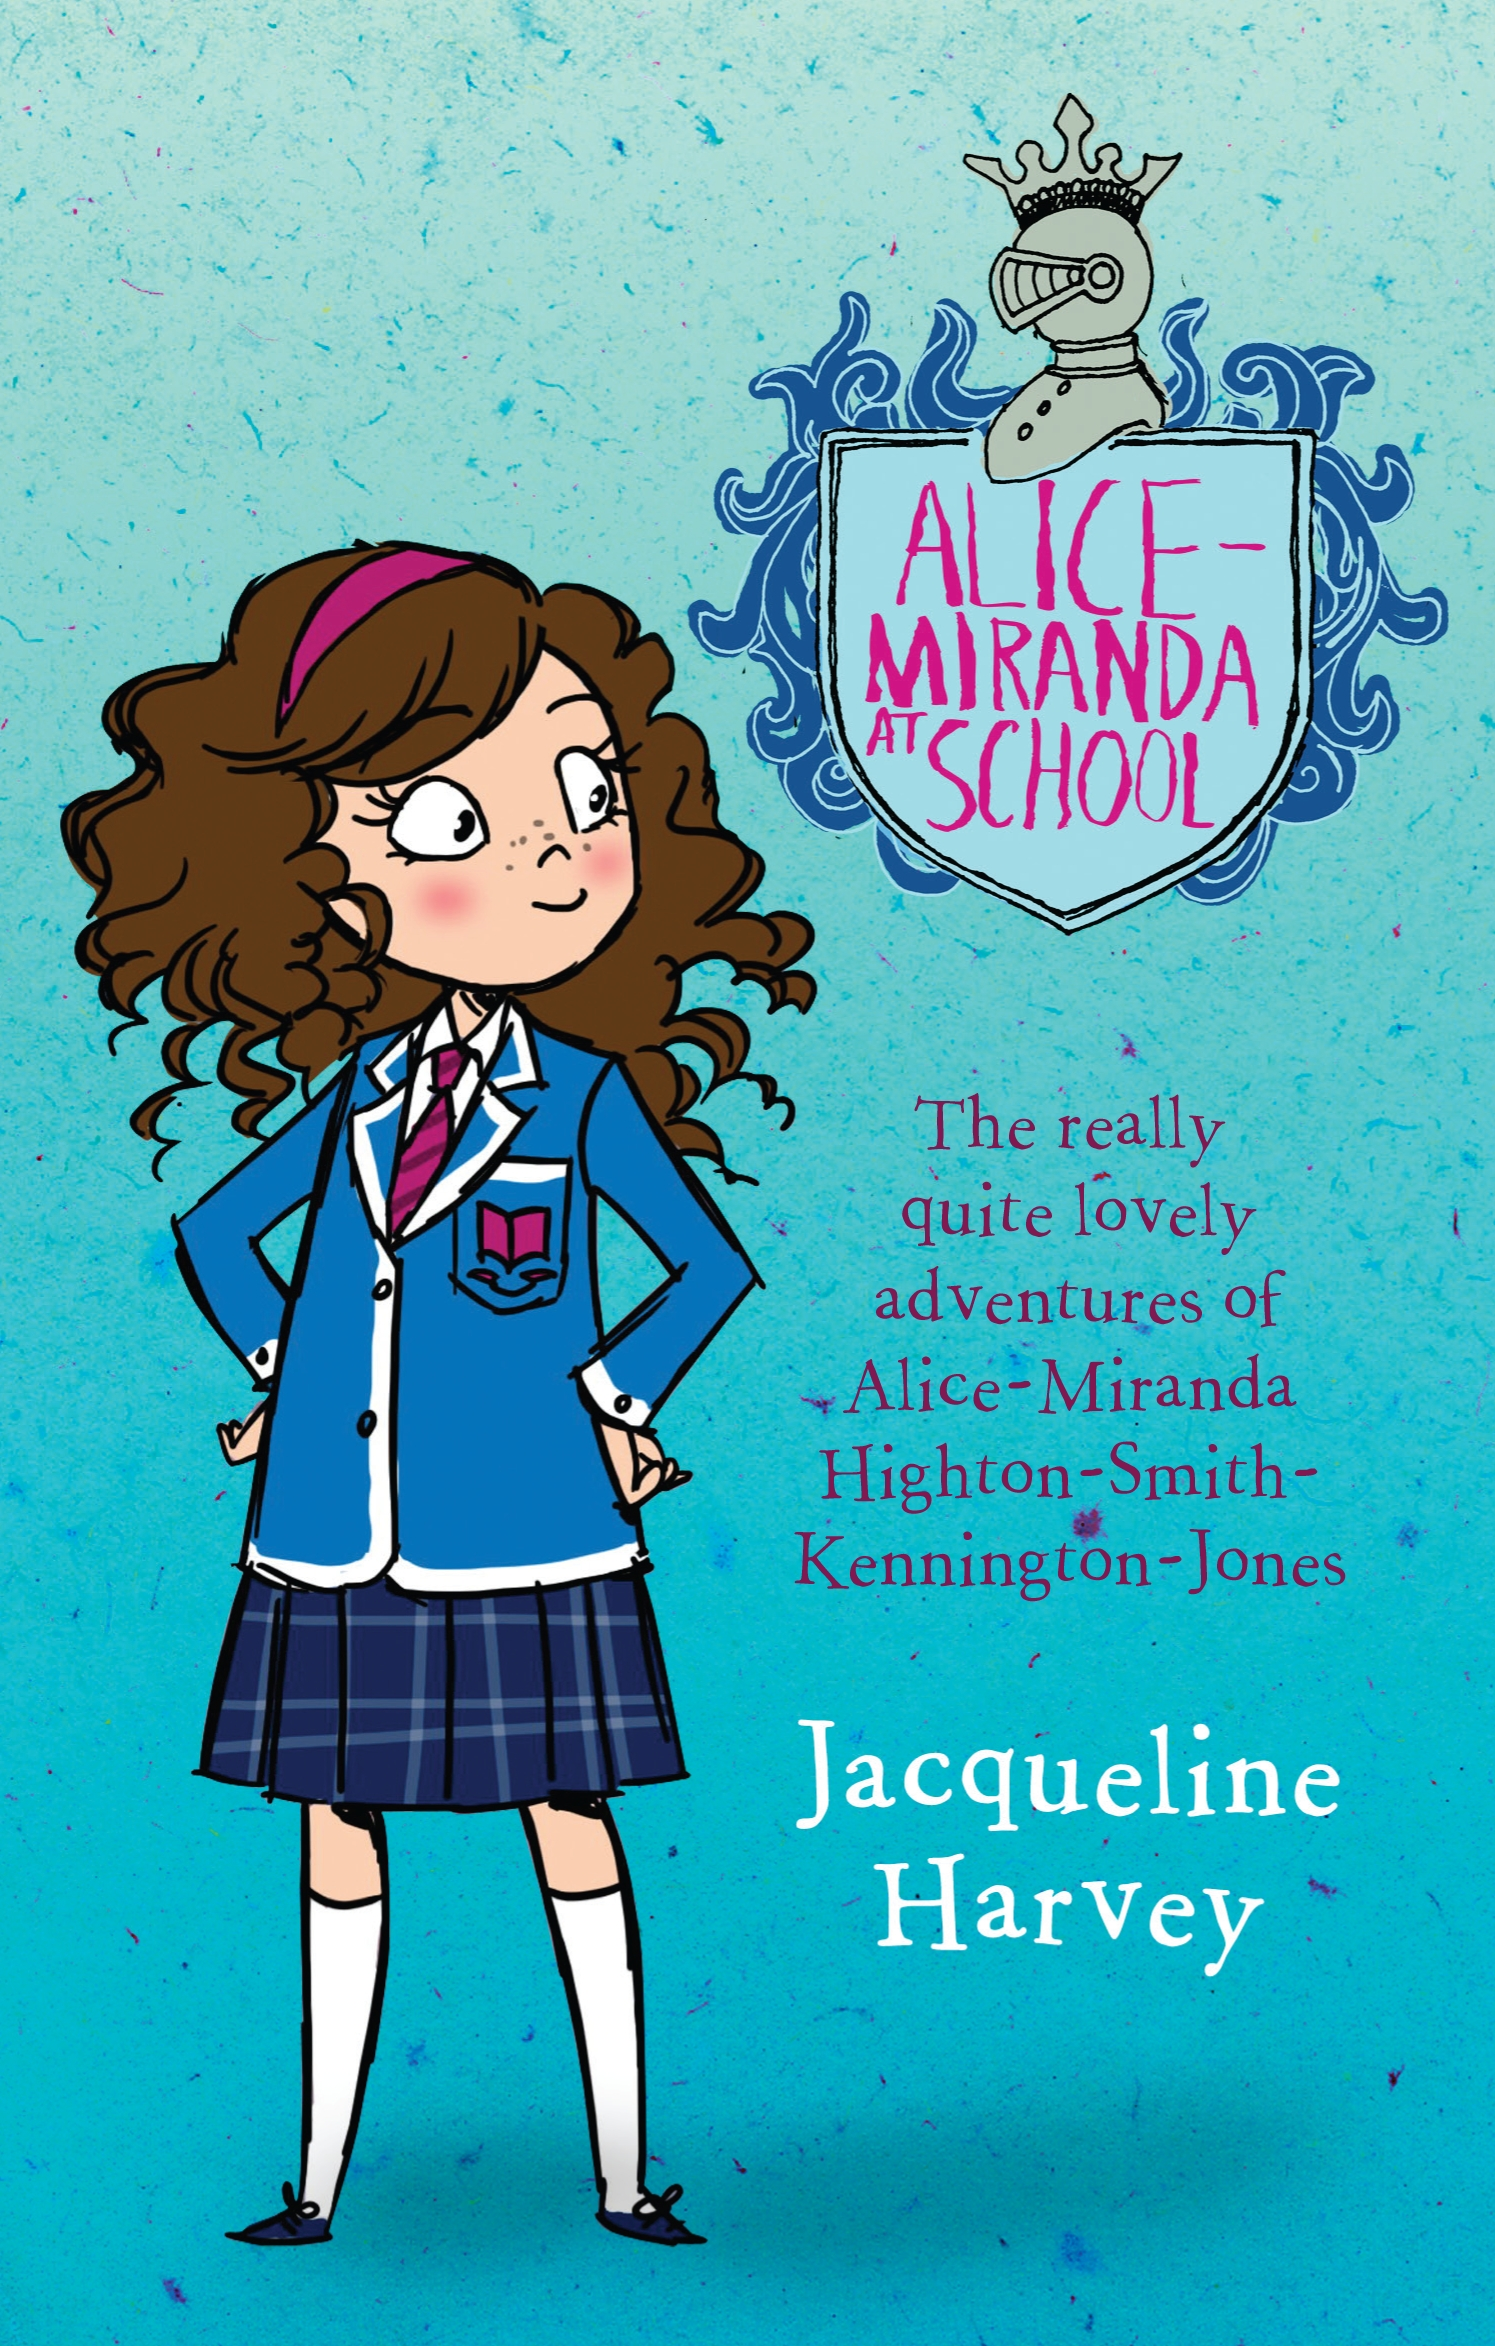 Alice-Miranda At School 1